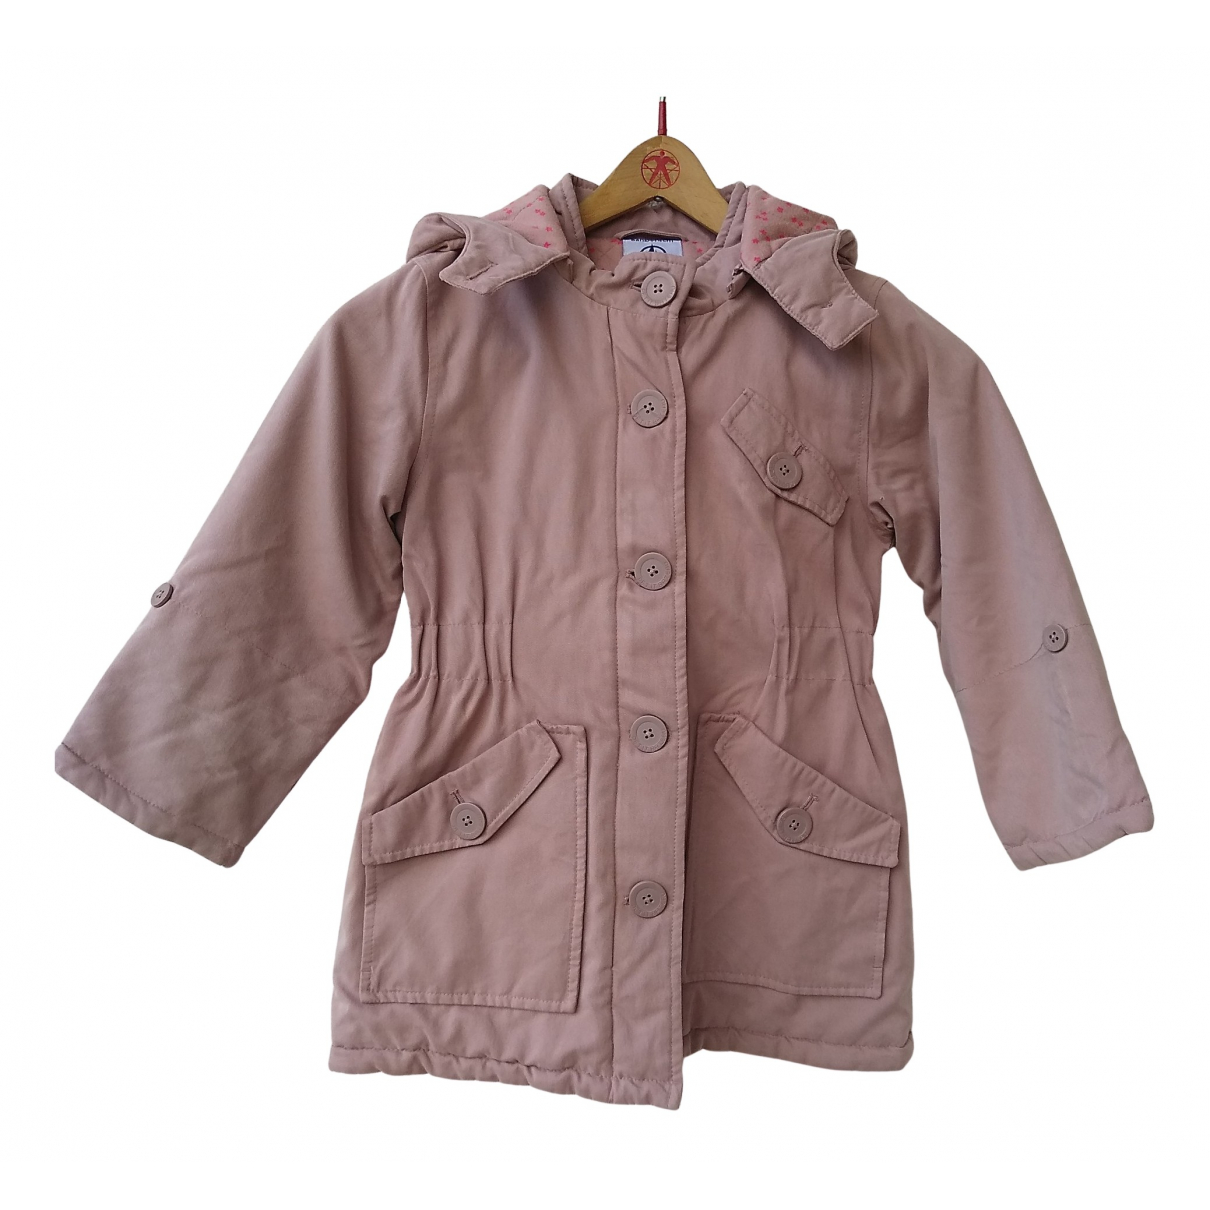 Petit Bateau N Pink Cotton jacket & coat for Kids 6 years - up to 114cm FR